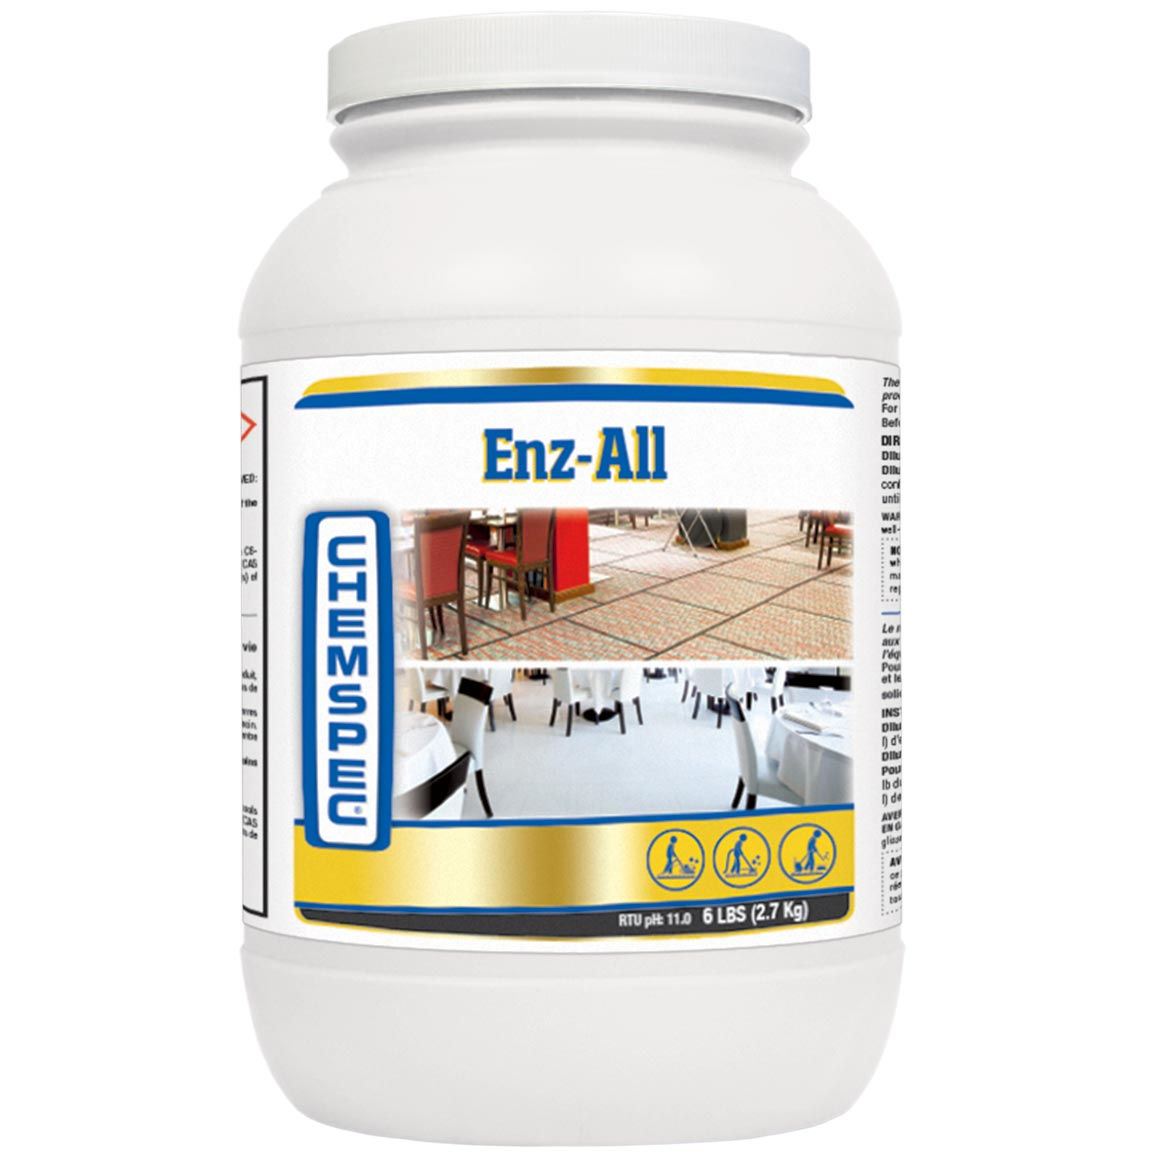 Chemspec C-EA24 Enz-All Powder Clean 24 lbs /Case 4/6 lbs Jars Enzall